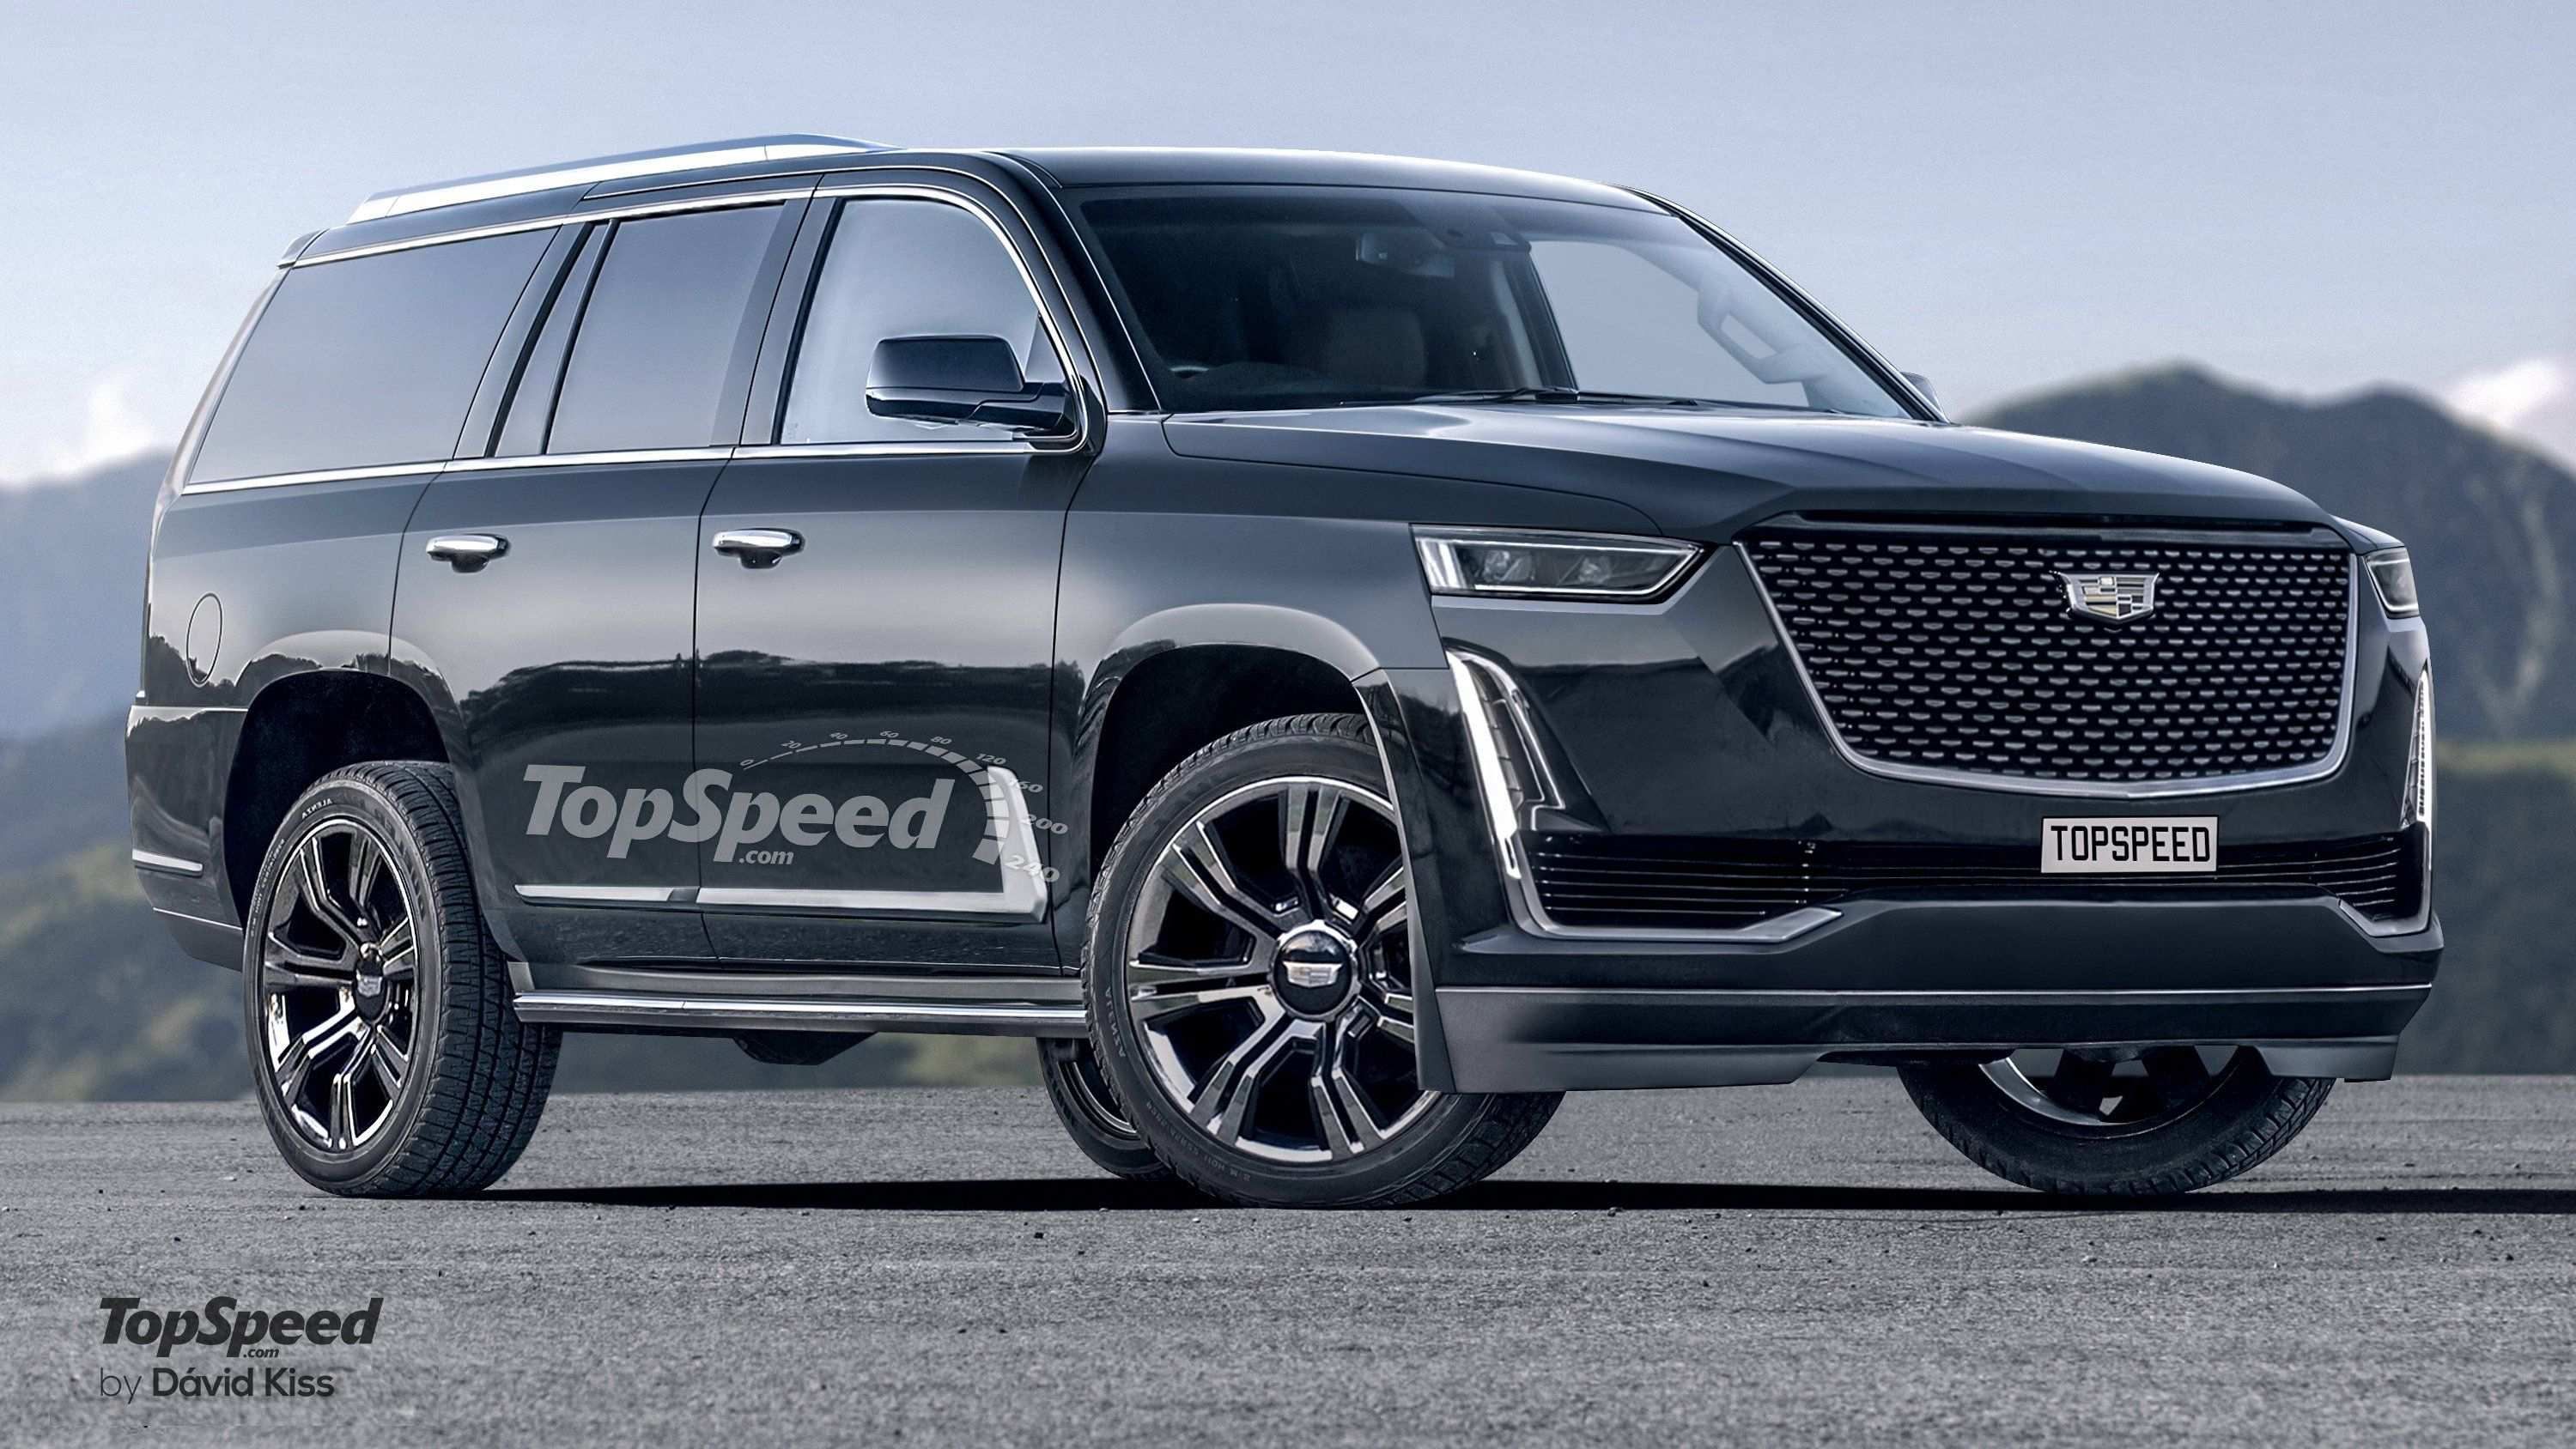 77 All New 2020 Cadillac Escalade Vsport Speed Test for 2020 Cadillac Escalade Vsport